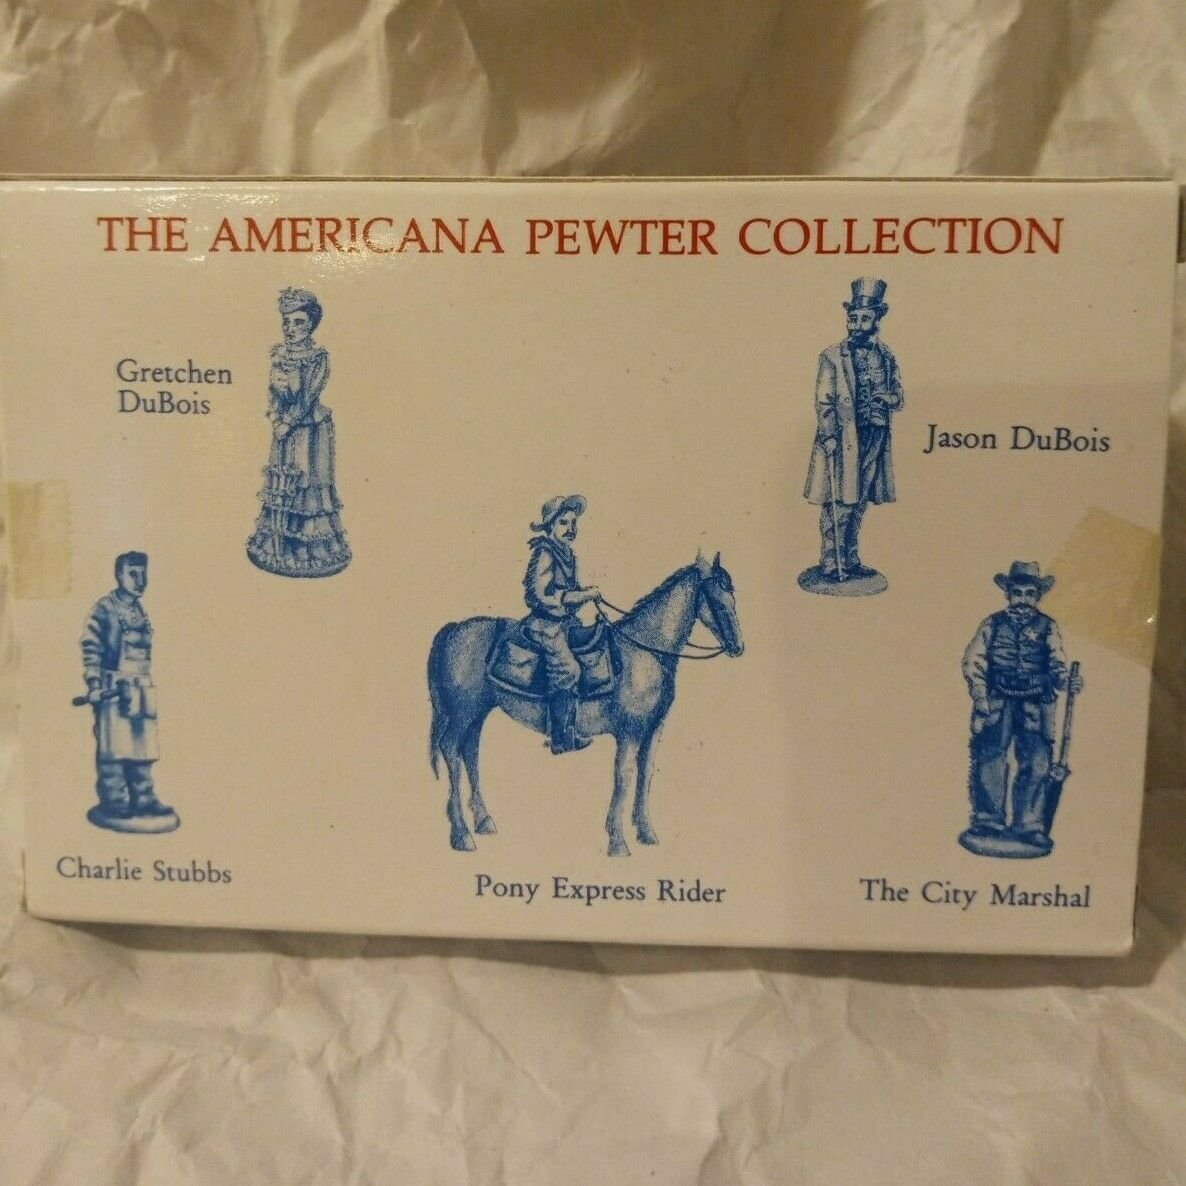 1992 Americana Pewter Collection AH19 Pony Express Rider Figurine Village People